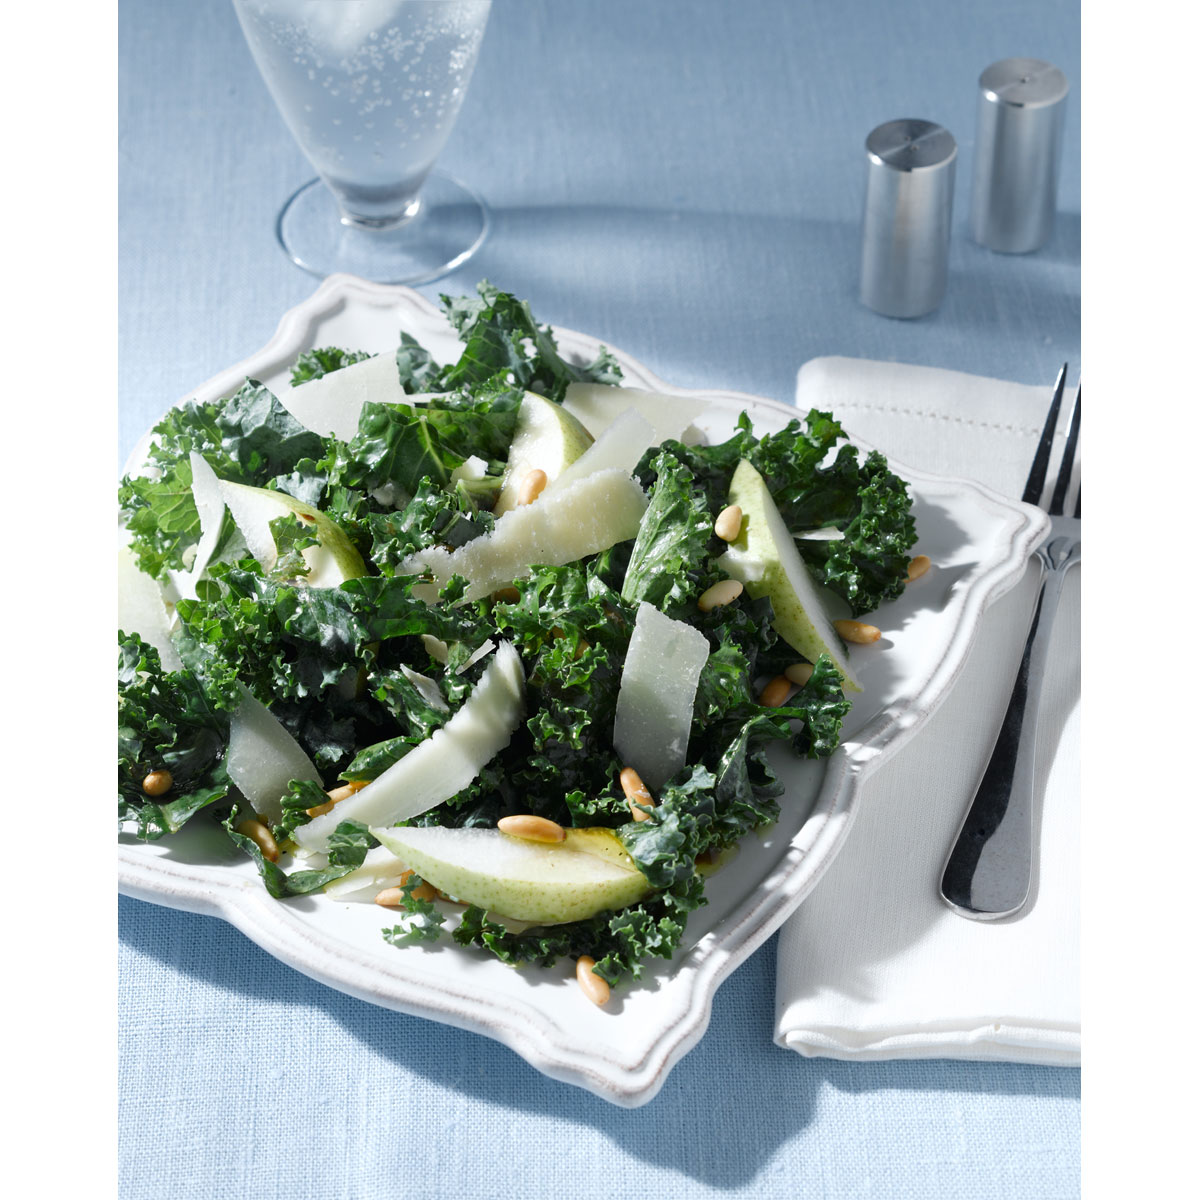 Kale salad with Grana Padano and citrus dressing